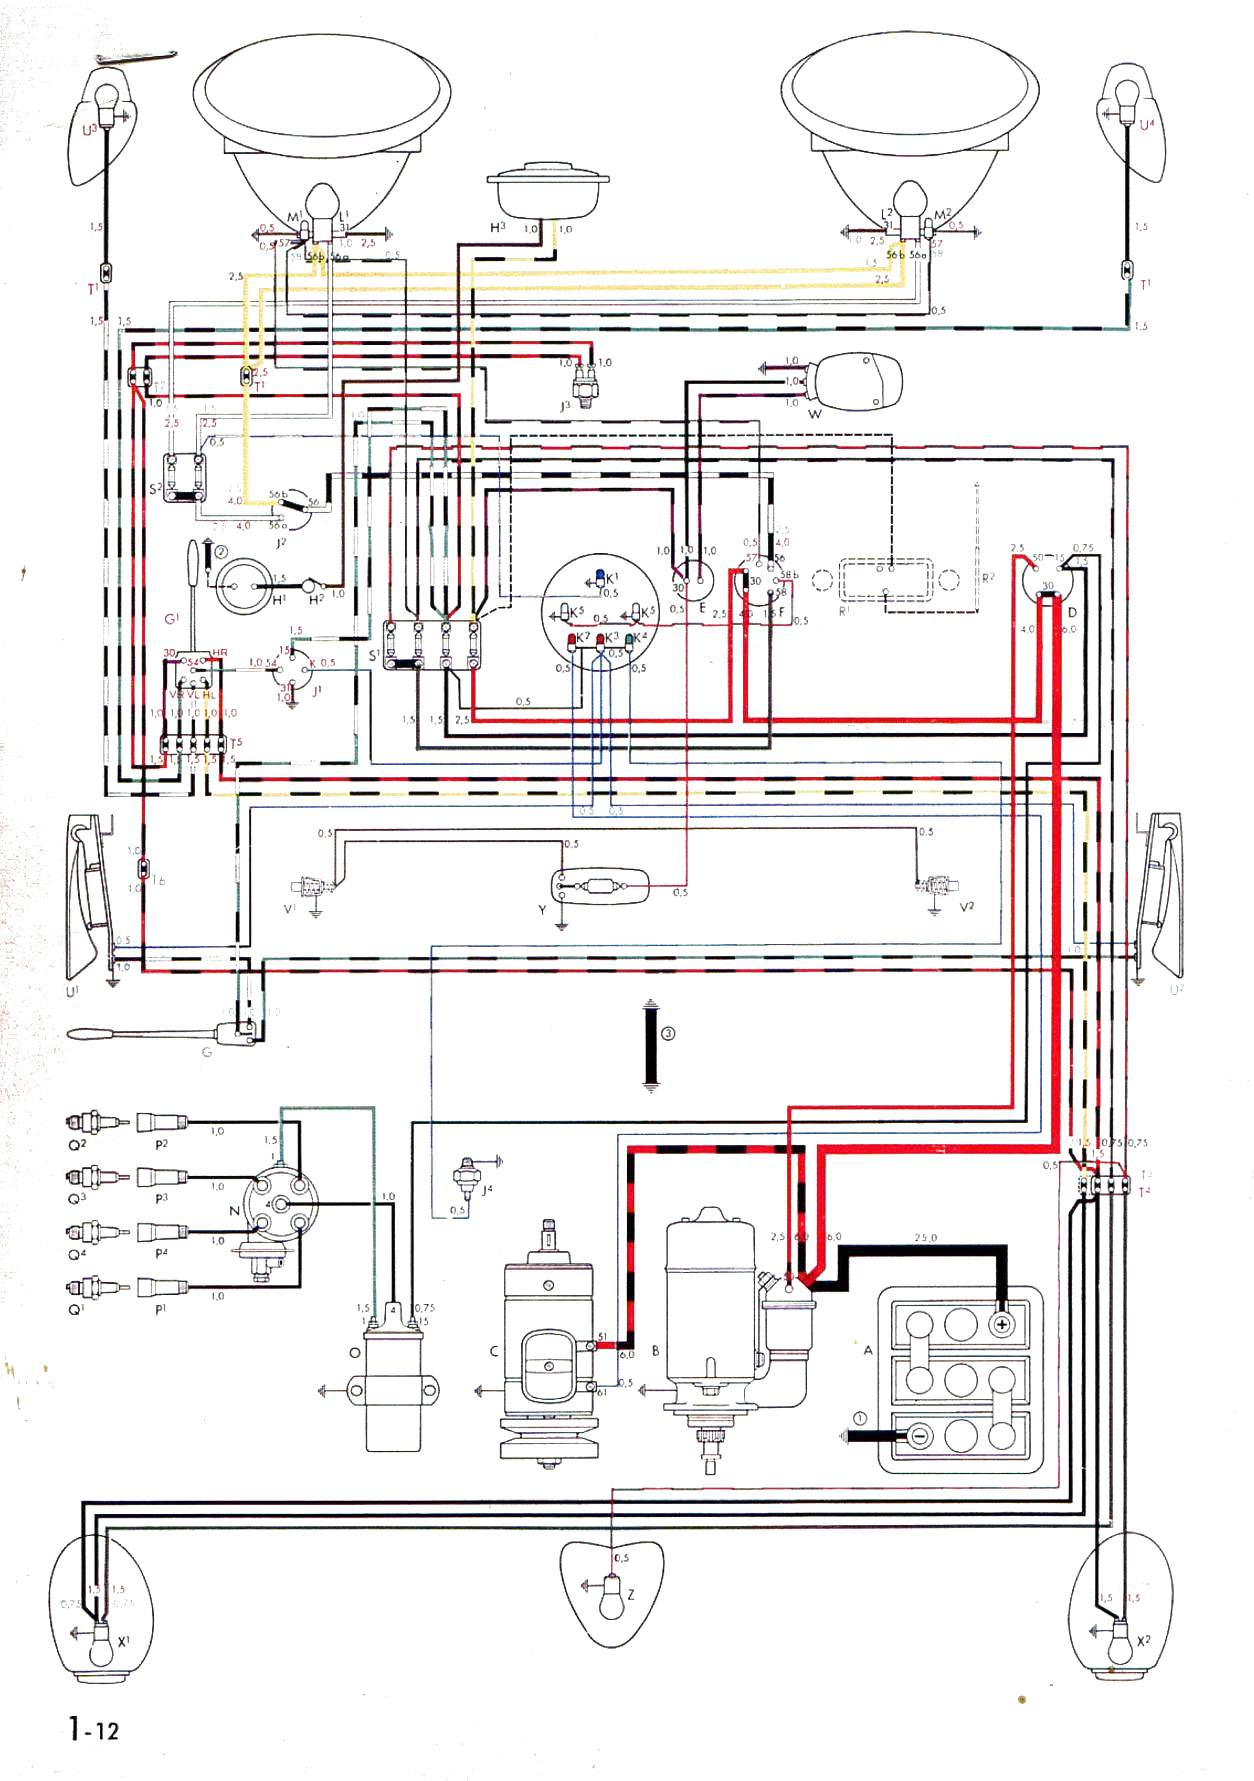 wiring diagram 93 eurovan westfalia 1983 vw vanagon wiring diagram wiring diagrams and schematics thesamba vanagon view topic 1 8t conversion